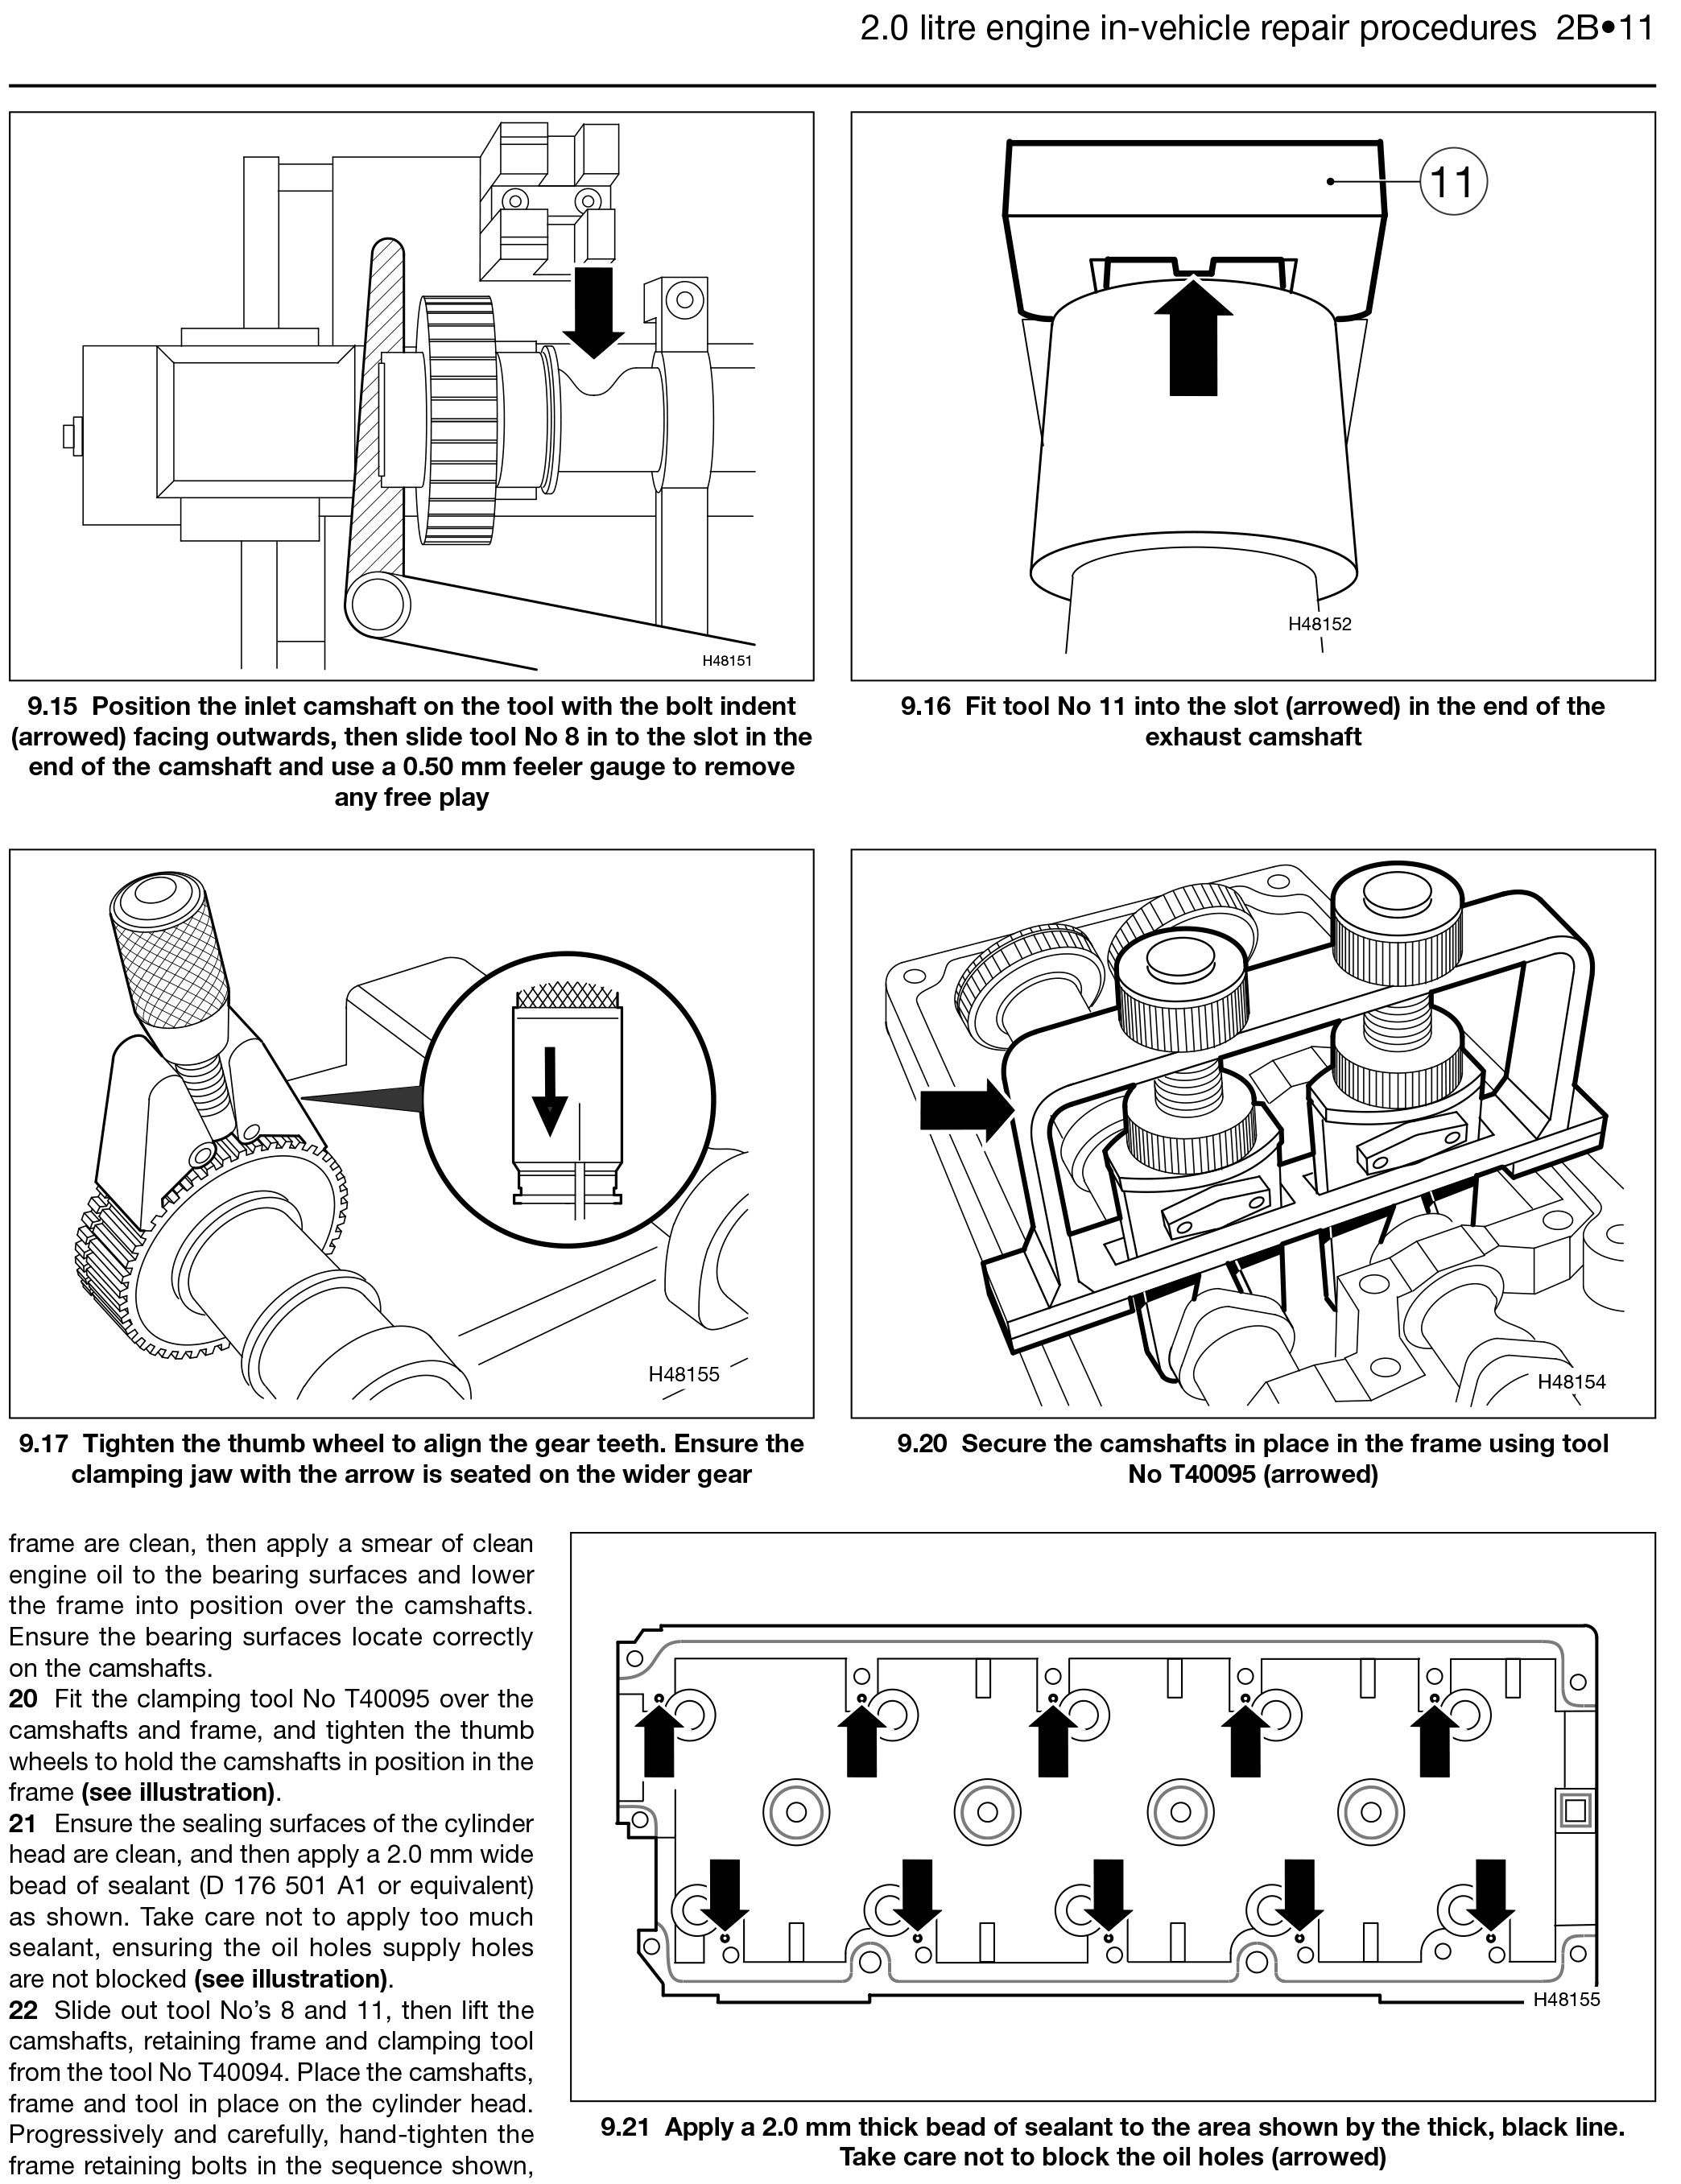 vw t5 transporter july 03 15 haynes repair manual haynes rh haynes com 4L60E Diagram Manual Transmission Parts Diagram